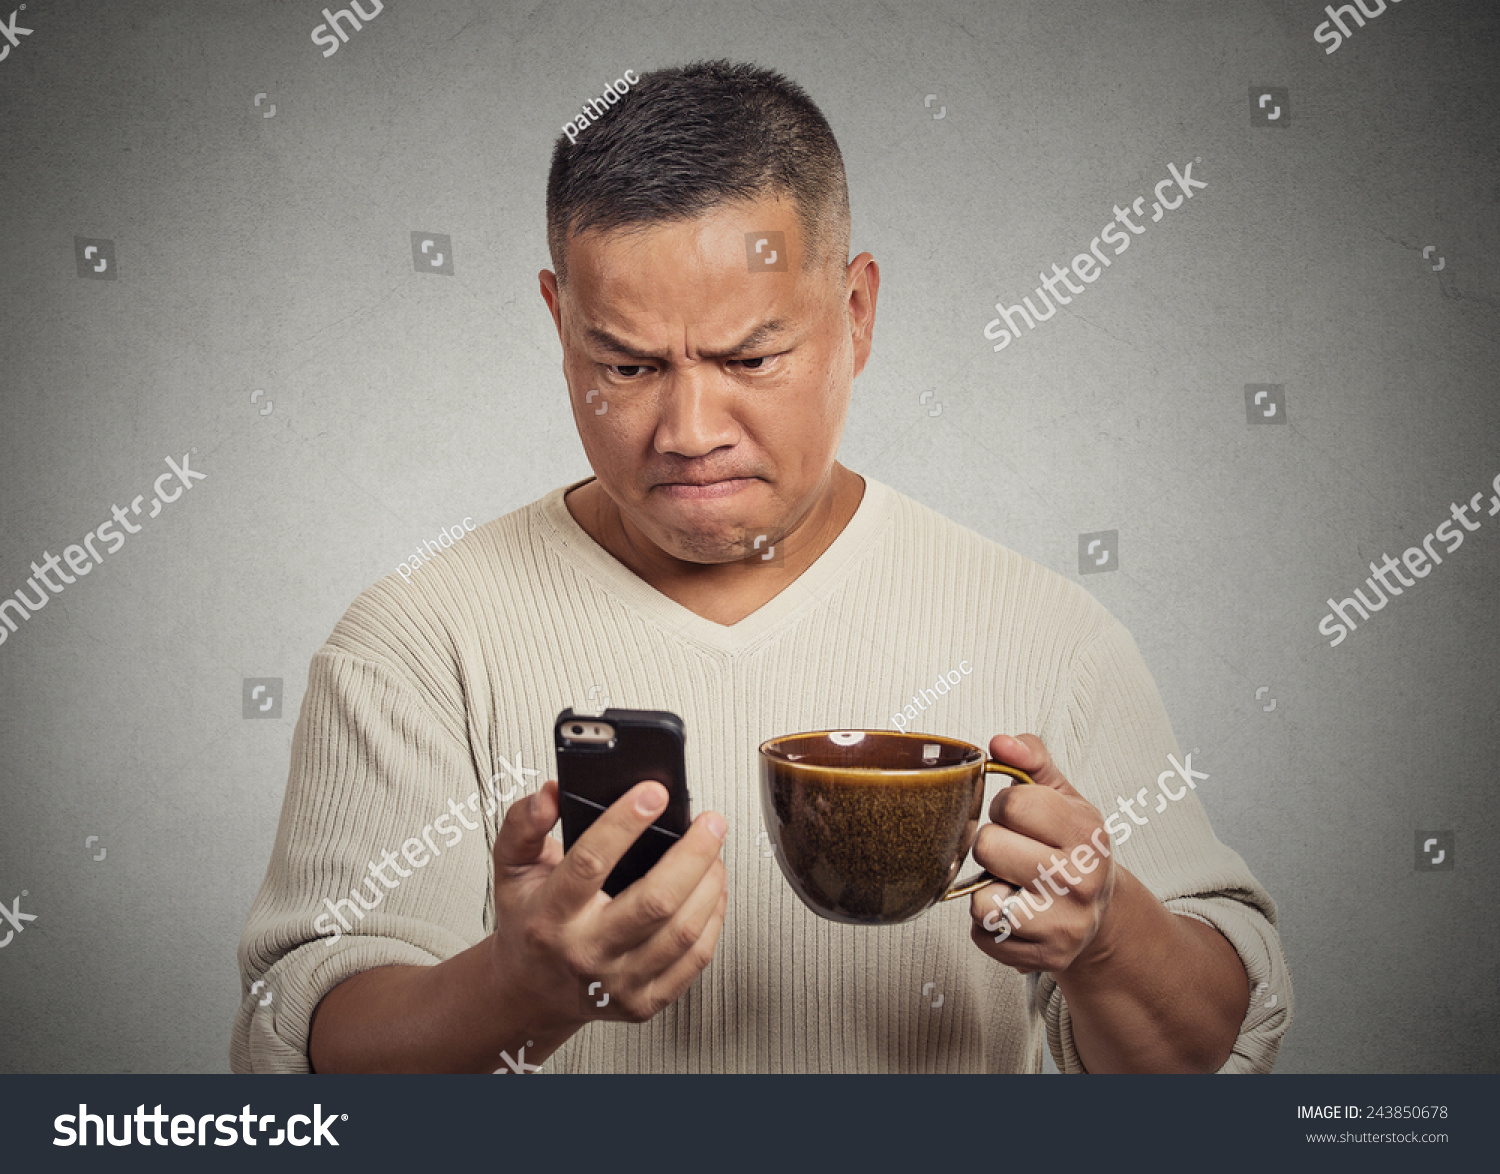 Frustrated office worker on the phone holding stock photo image - Closeup Portrait Worried Angry Frustrated Man Reading Bad News Sms On Smart Mobile Phone Drinking Holding